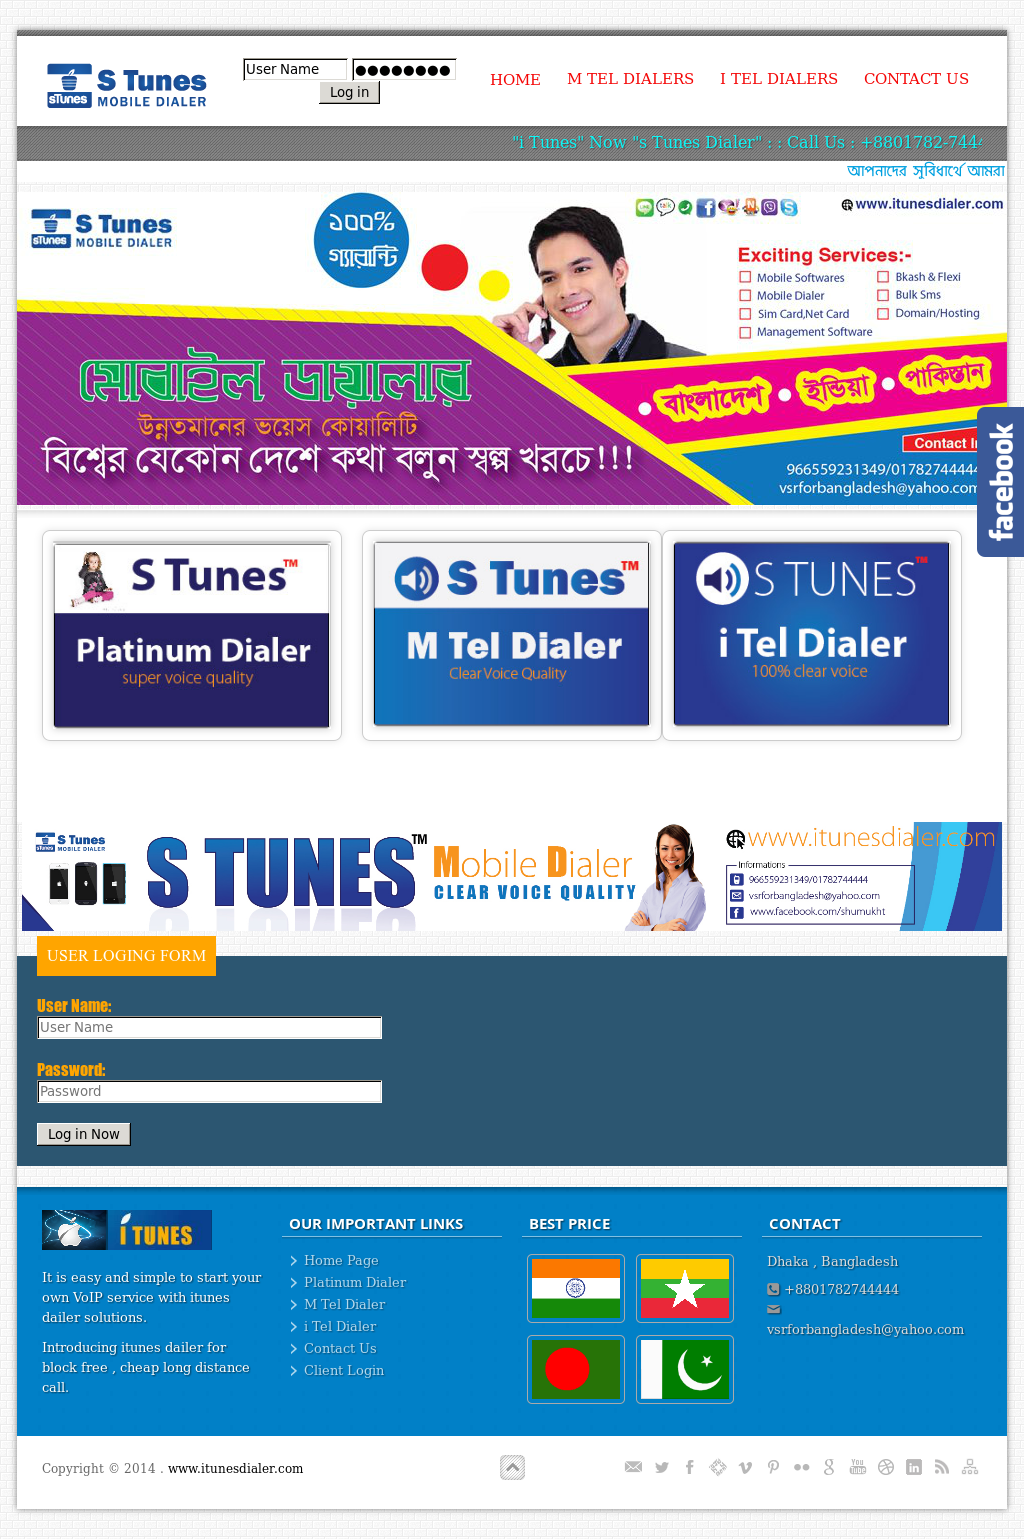 Itunes Dialer Competitors, Revenue and Employees - Owler